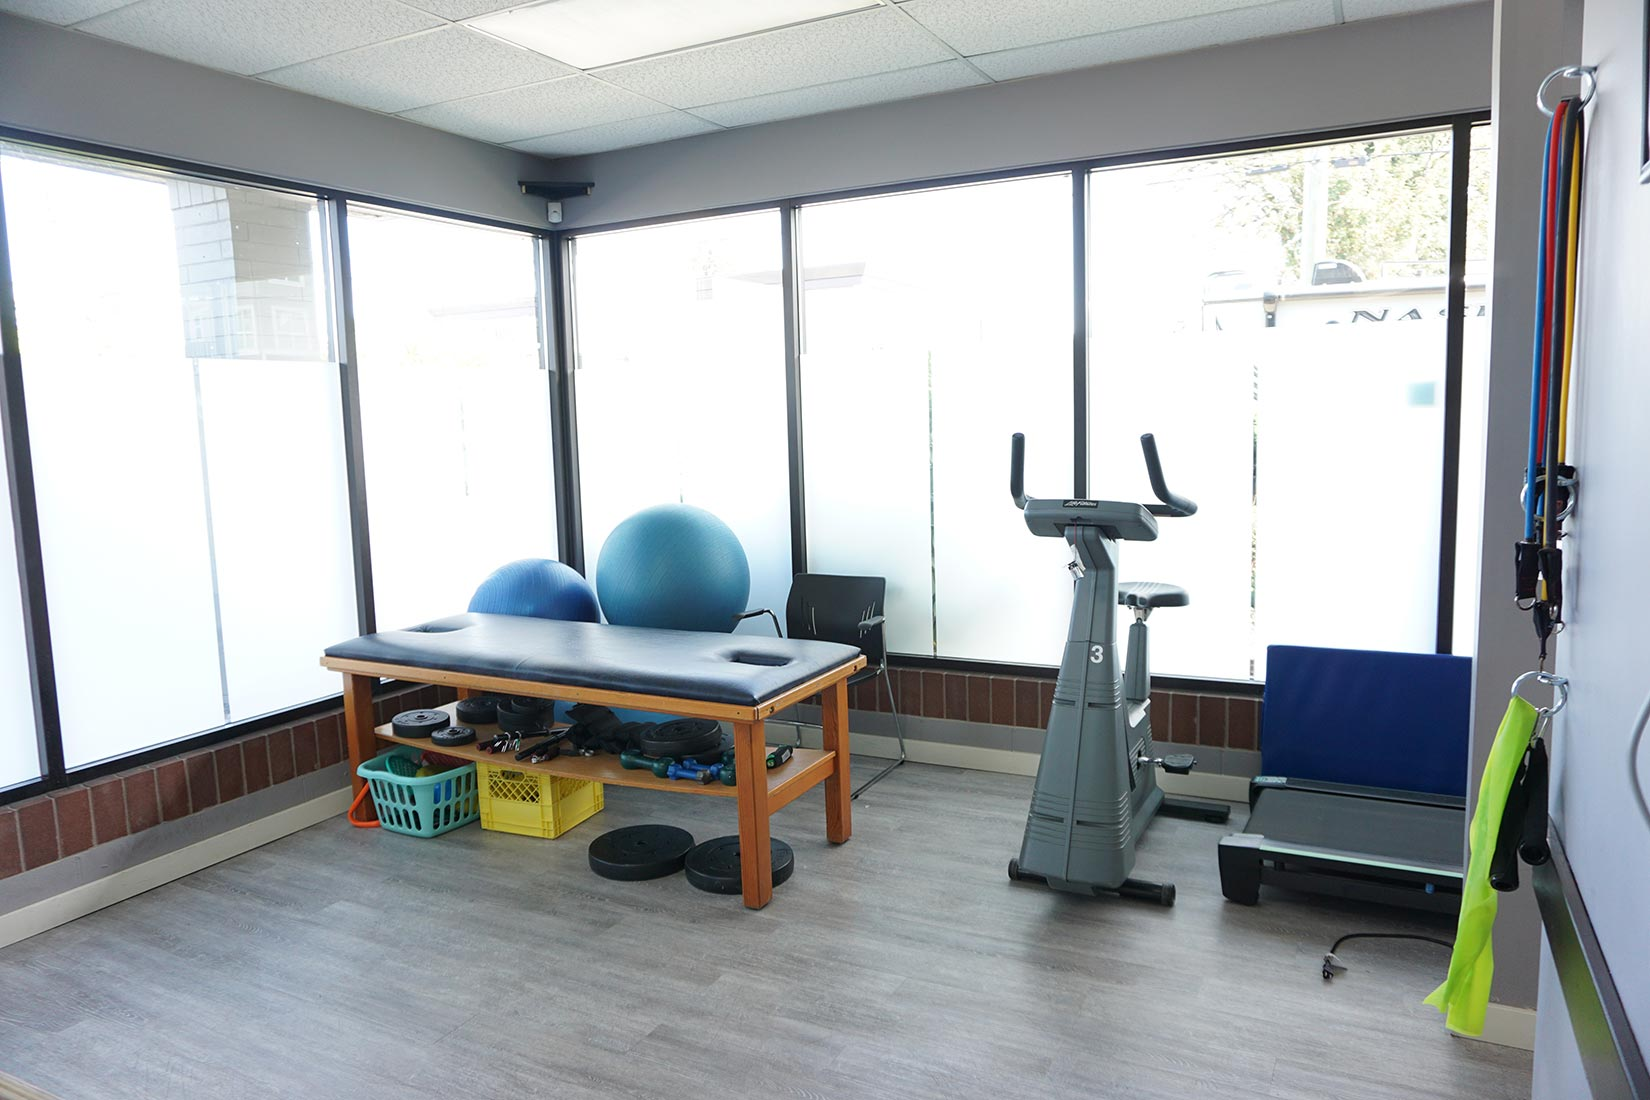 our one of the treatment room in Abbotsford physio clinic